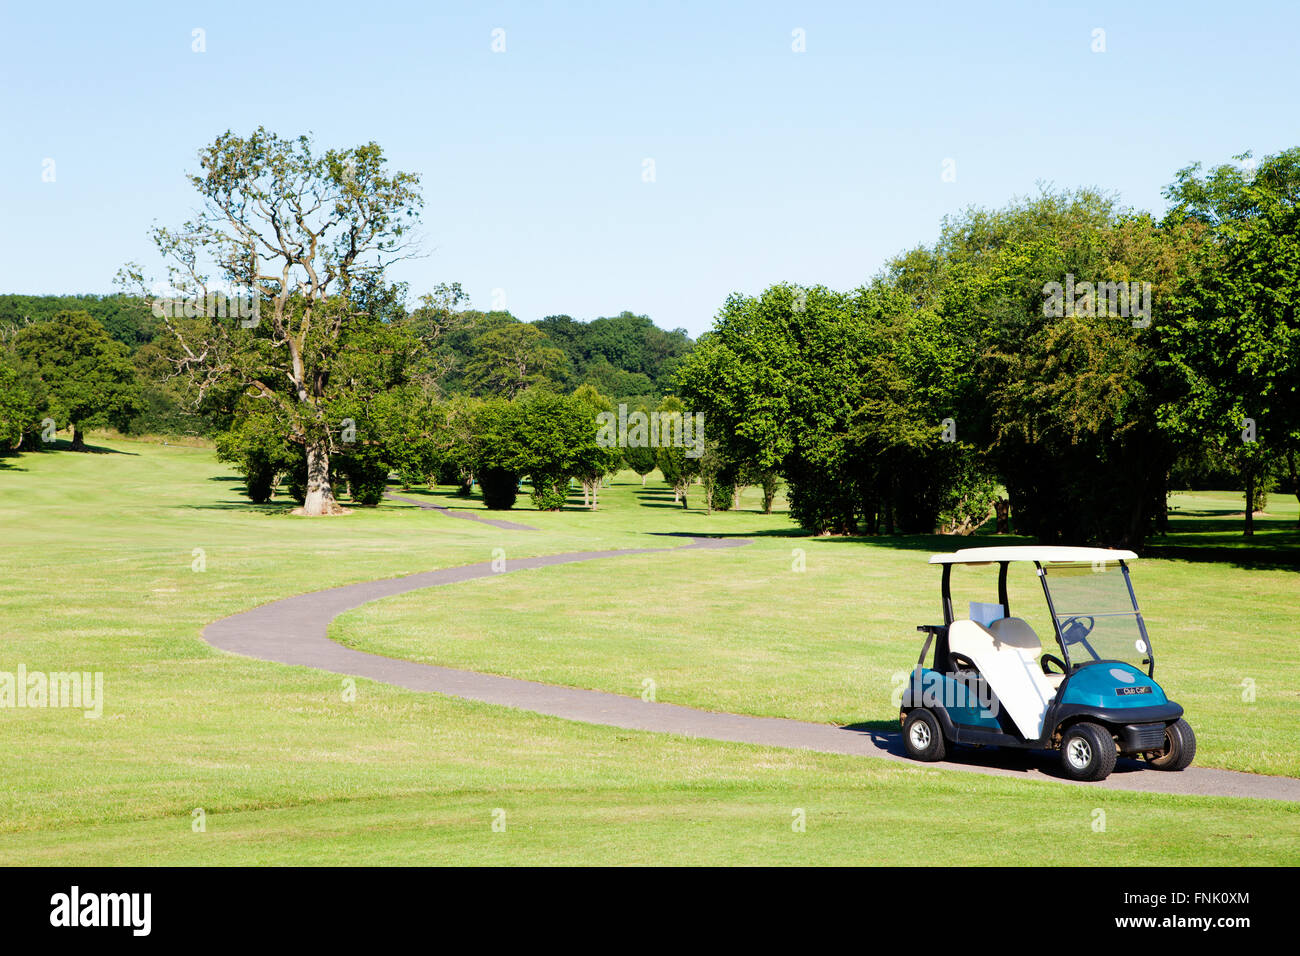 Empty golf buggy on path on a golf course - Stock Image